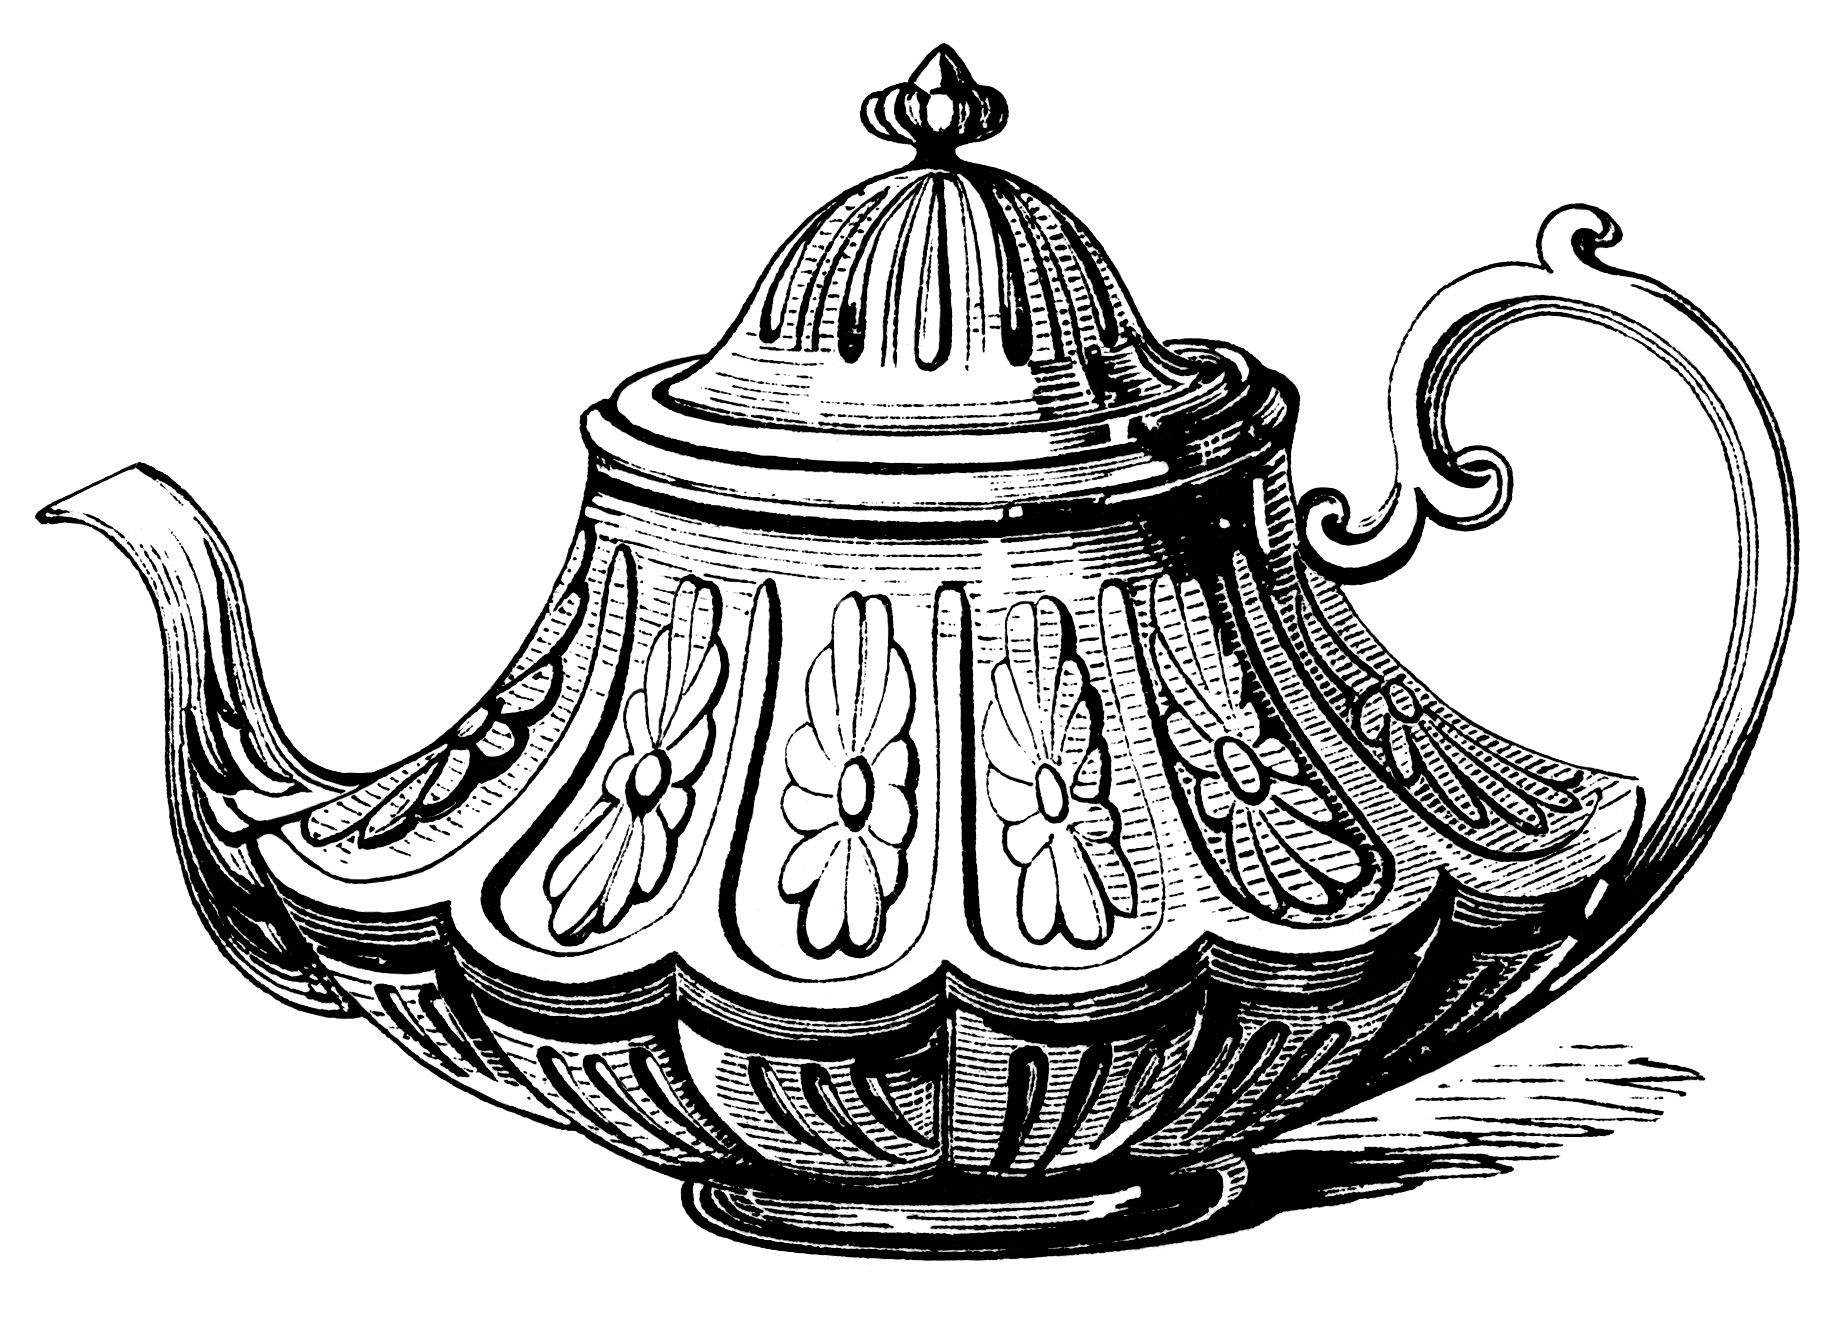 Victorian Tea Pot Vintage Teapot Clip Art Black And White Ilration Antique Printable Party Graphics